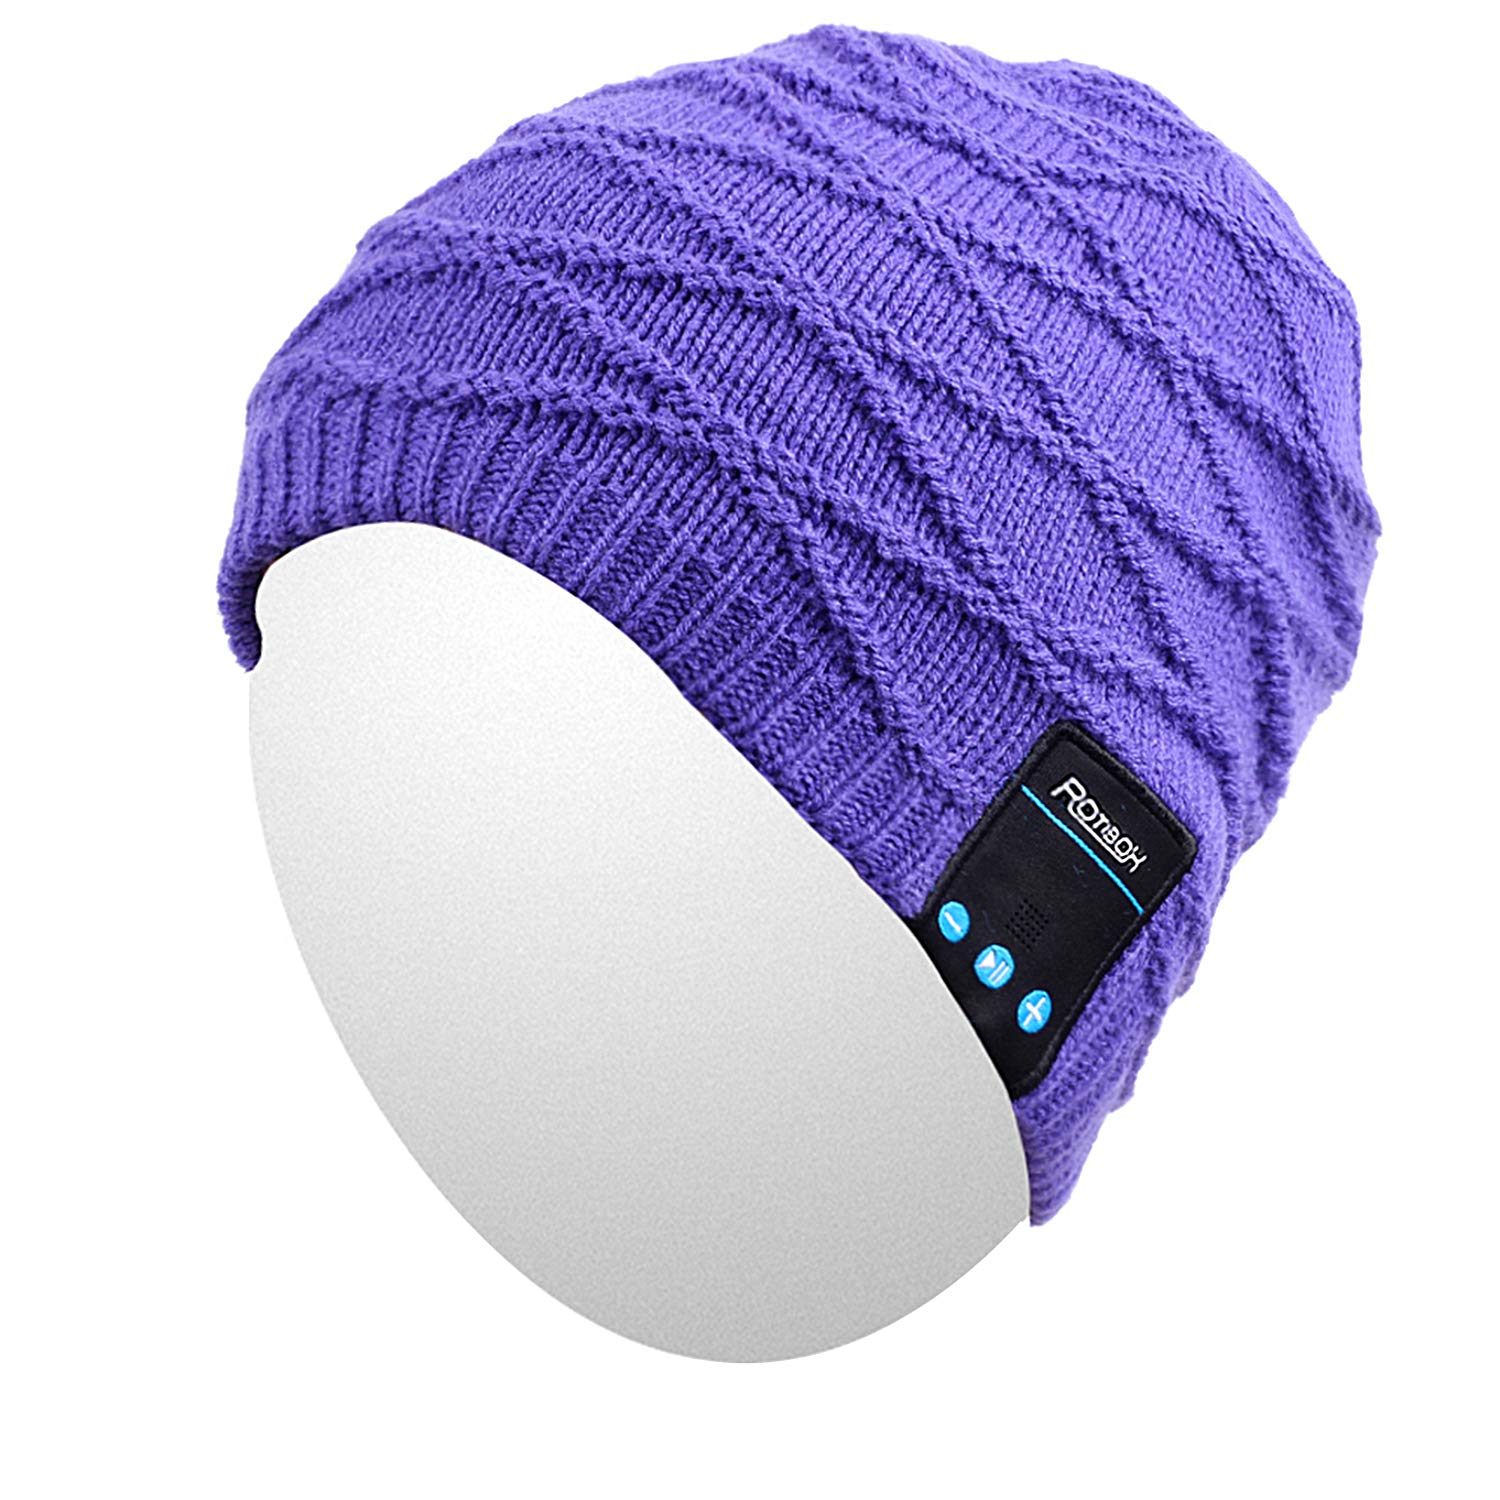 Qshell Outdoor Bluetooth Beanie Hat Slouchy Knit Skully Cap with Wireless Bluetooth Headphone Headset Earphone Music Audio Hands-Free Phone Call for Winter Sports Fitness Gym Exercise Workout-Black by Qshell